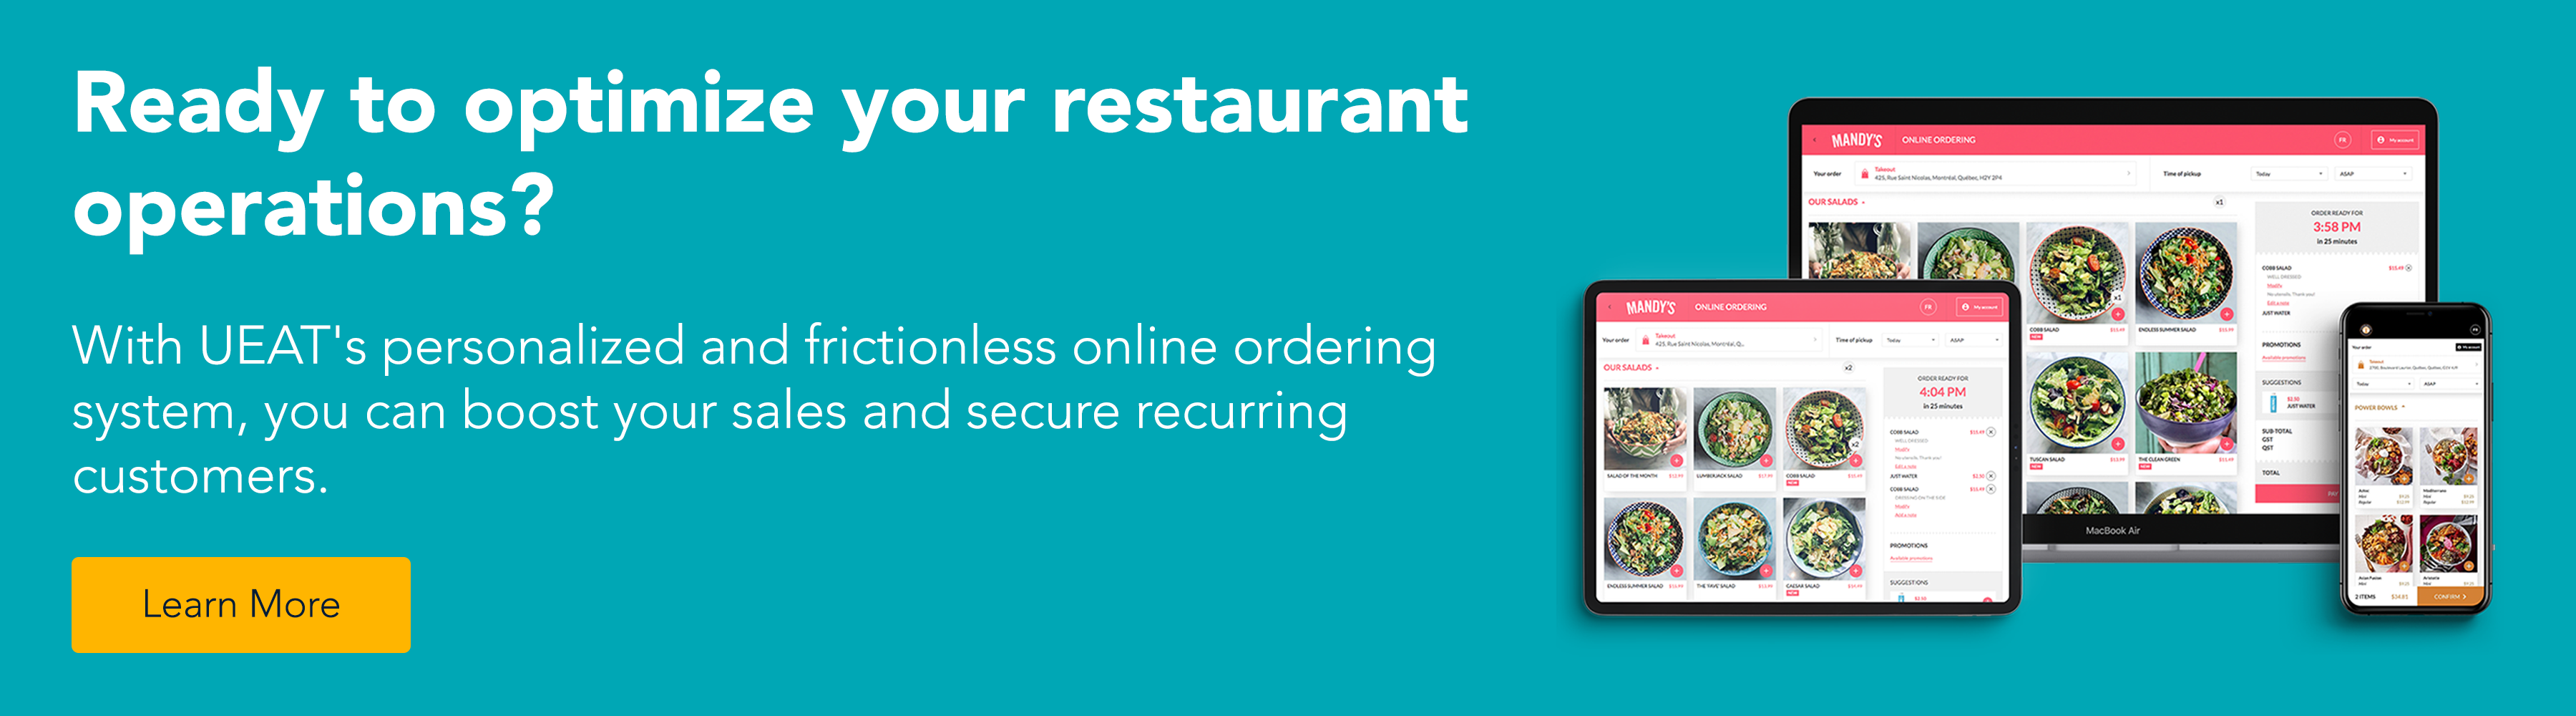 Ready to optimize your restaurant operations? With UEAT's personalized and frictionless online ordering system, you can boost your sales and secure recurring customers. Learn More!